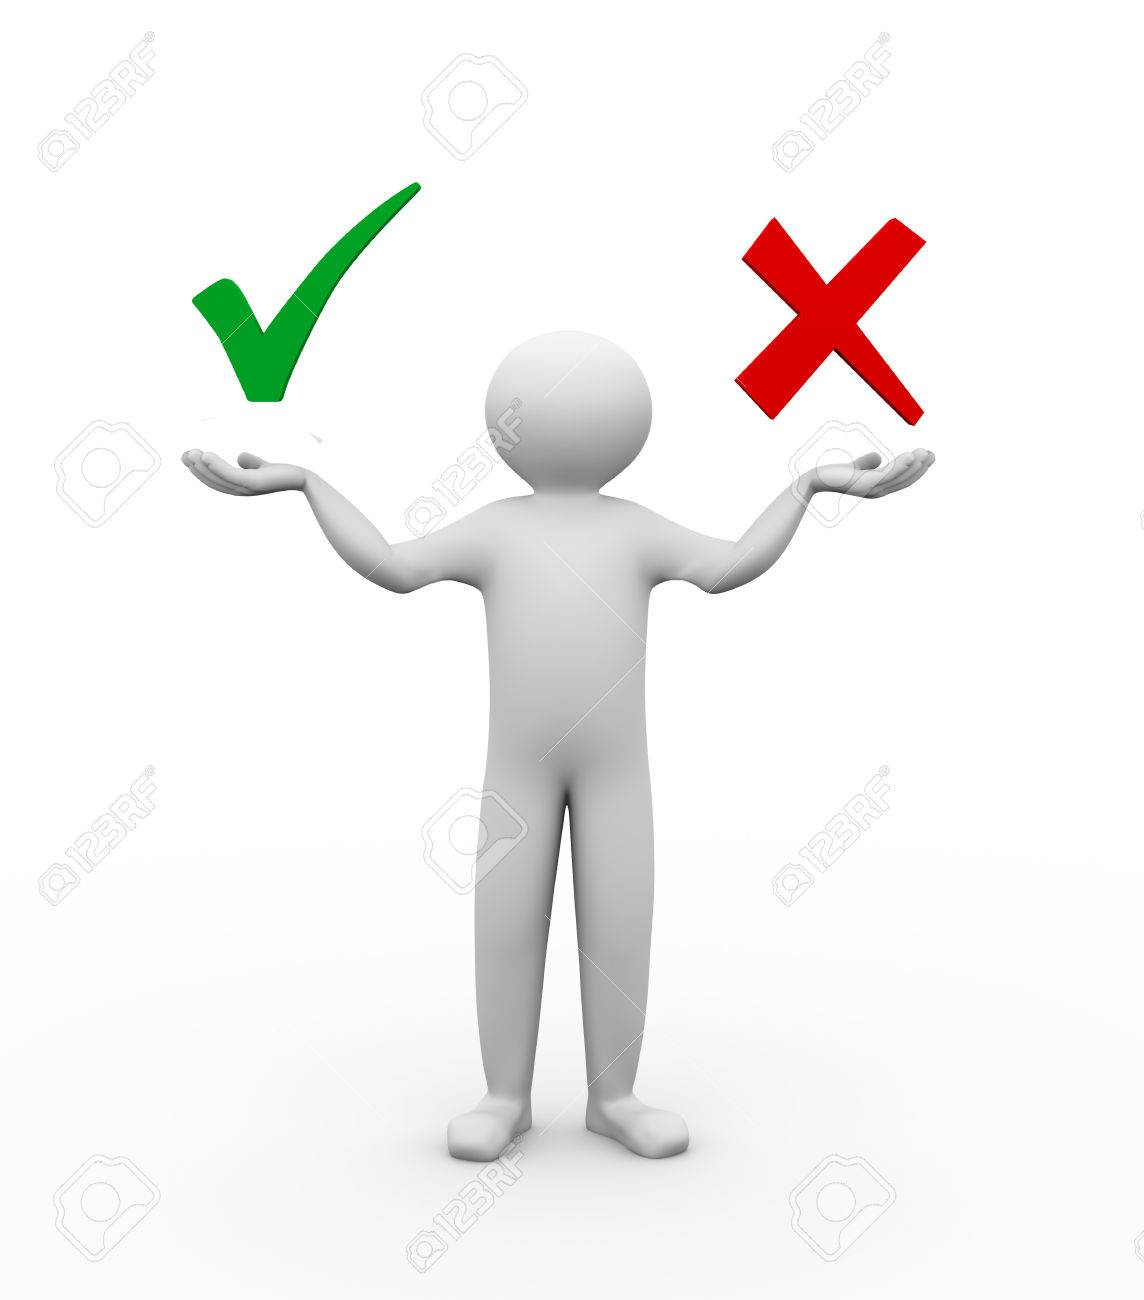 3d Illustration Of Person Holding Symbols Of Correct And Wrong